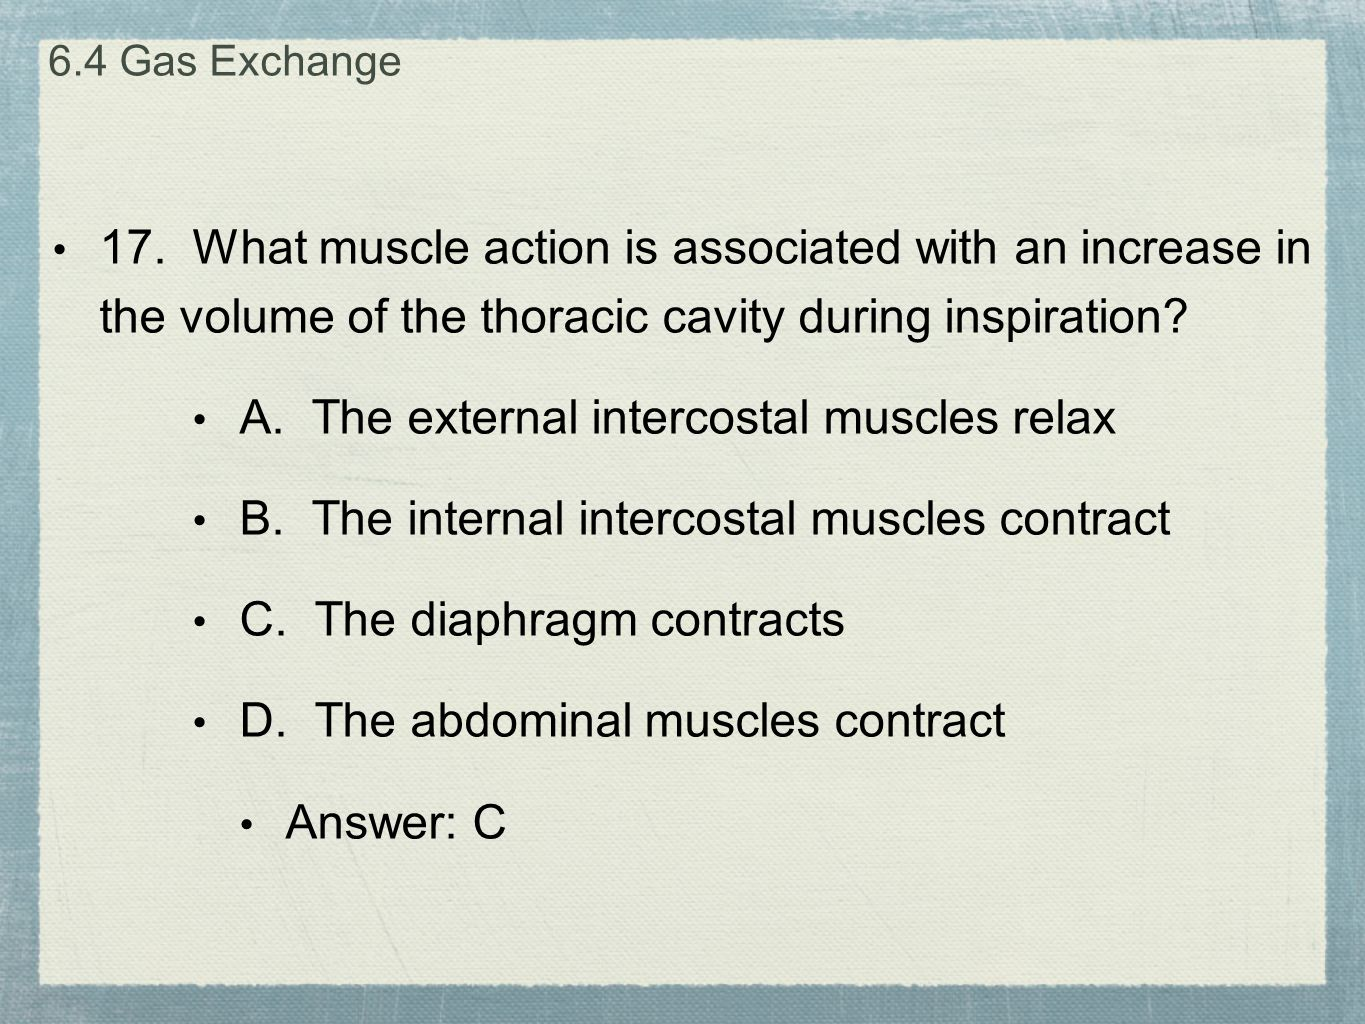 A. The external intercostal muscles relax